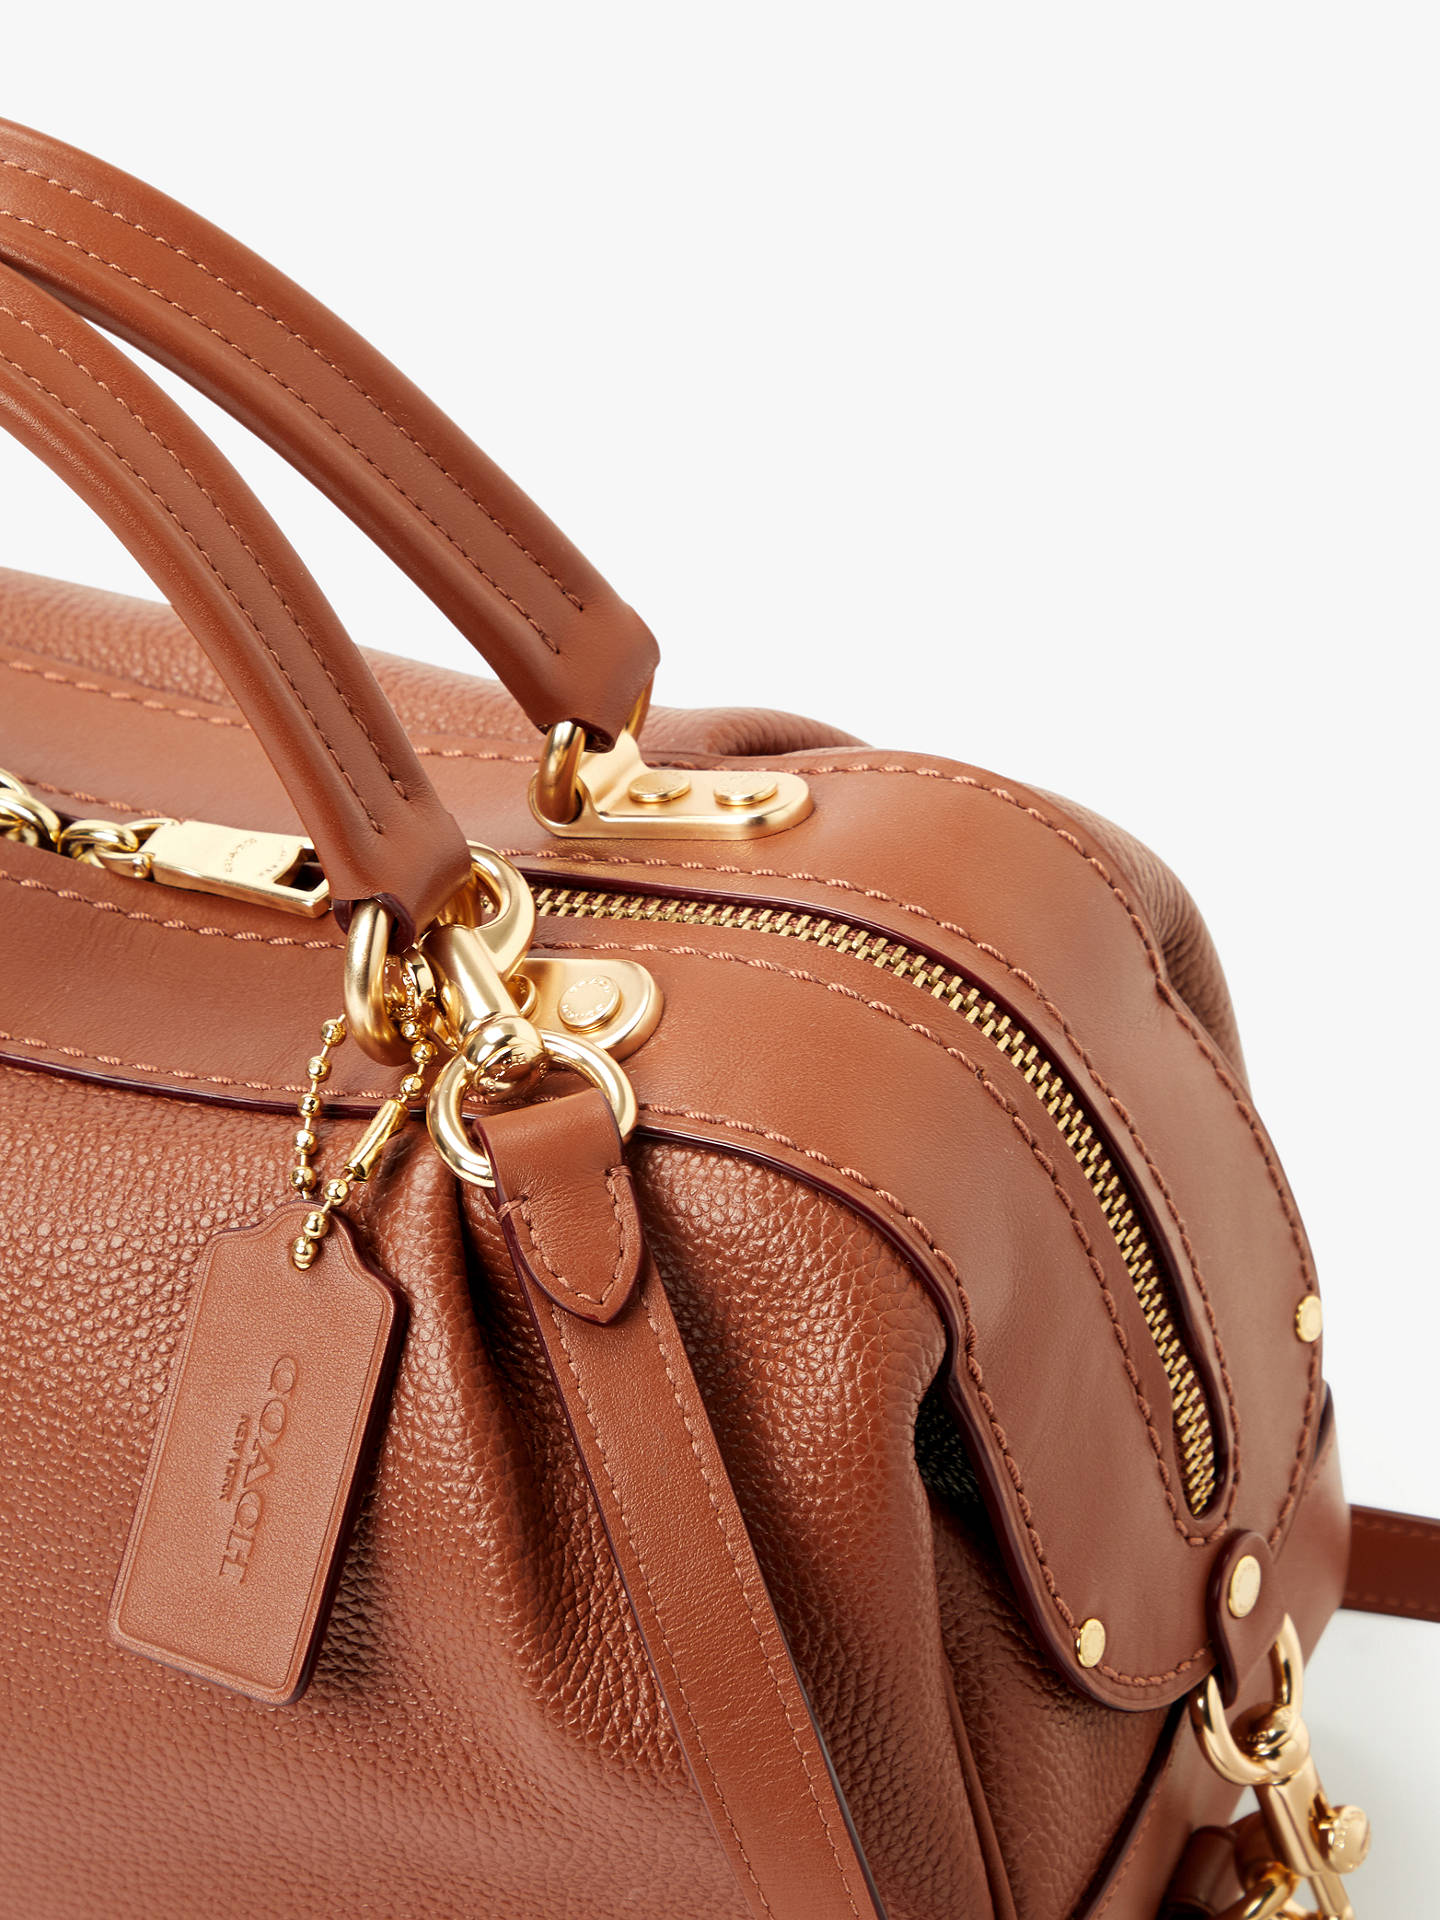 ee7f0d42c3 ... Buy Coach Aidy Leather Satchel Bag, 1941 Saddle Online at johnlewis.com